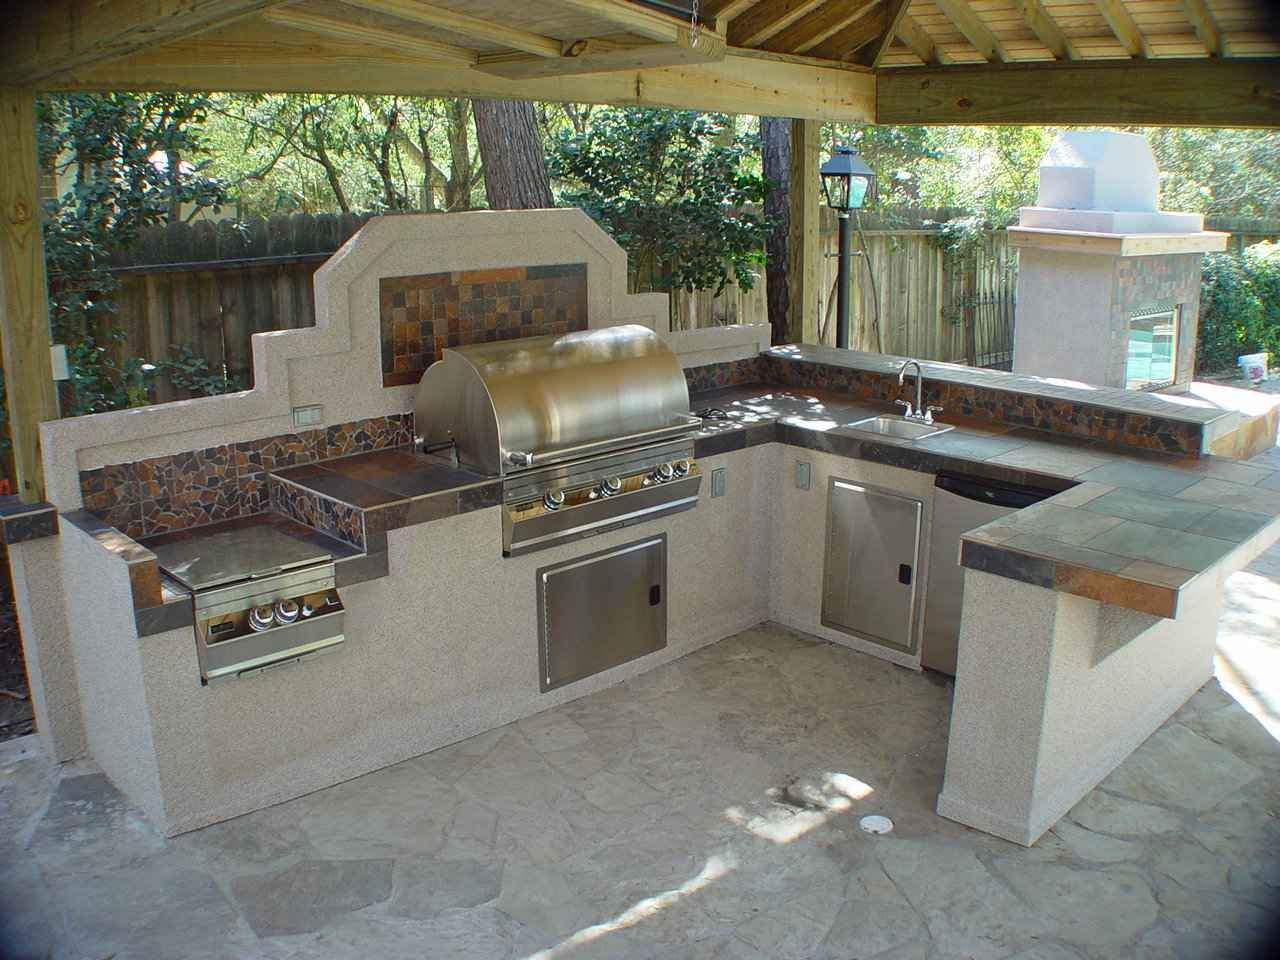 Outdoor Grill Design Ideas patio bbq designs patio design patio ideas 20 Fancy Modular Outdoor Kitchen Designs